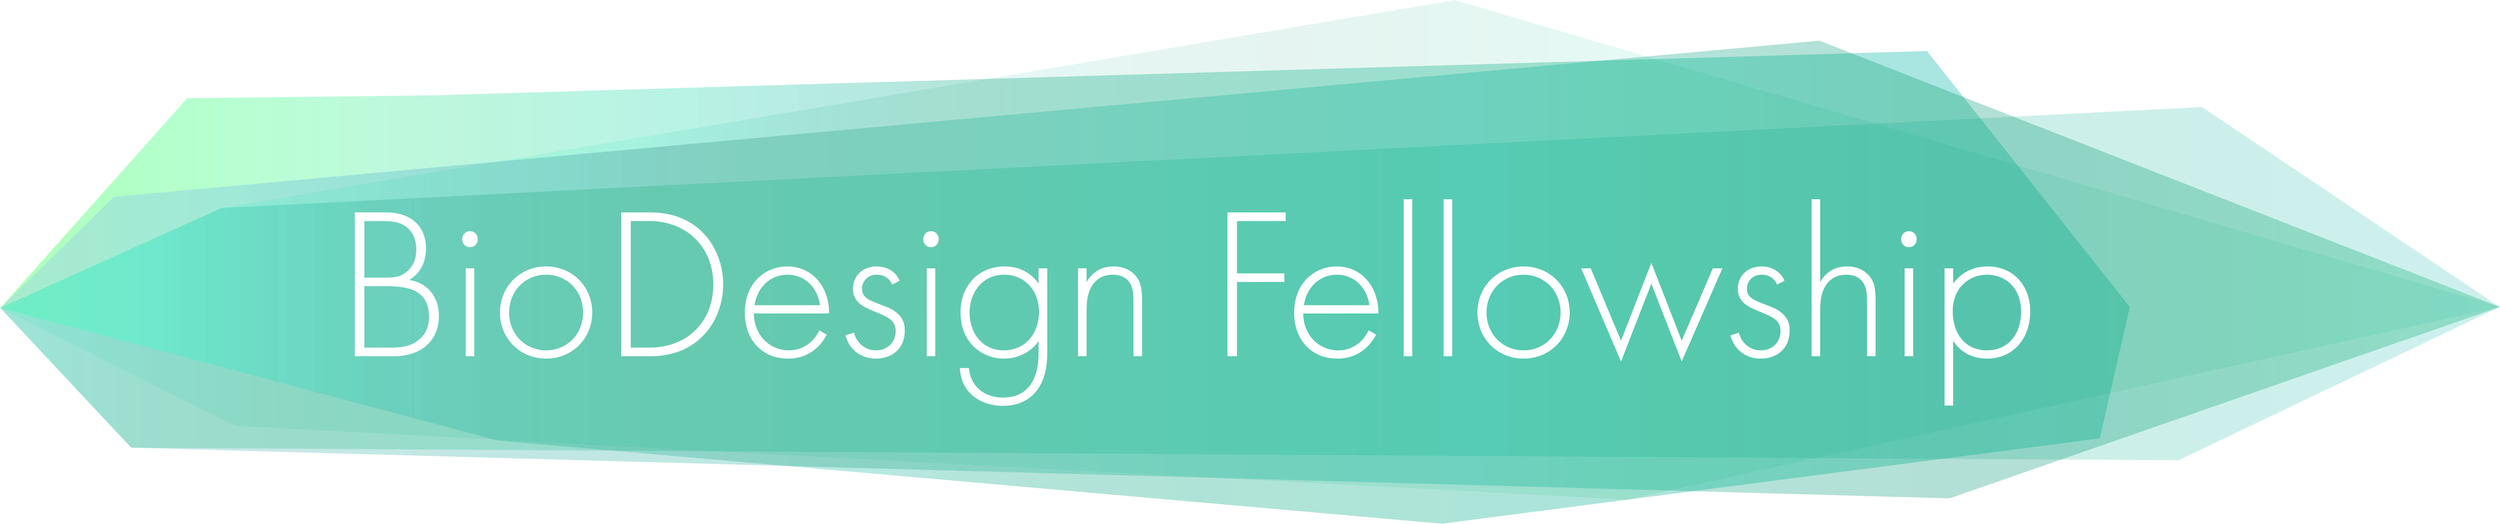 Biodesign fellowshop.png